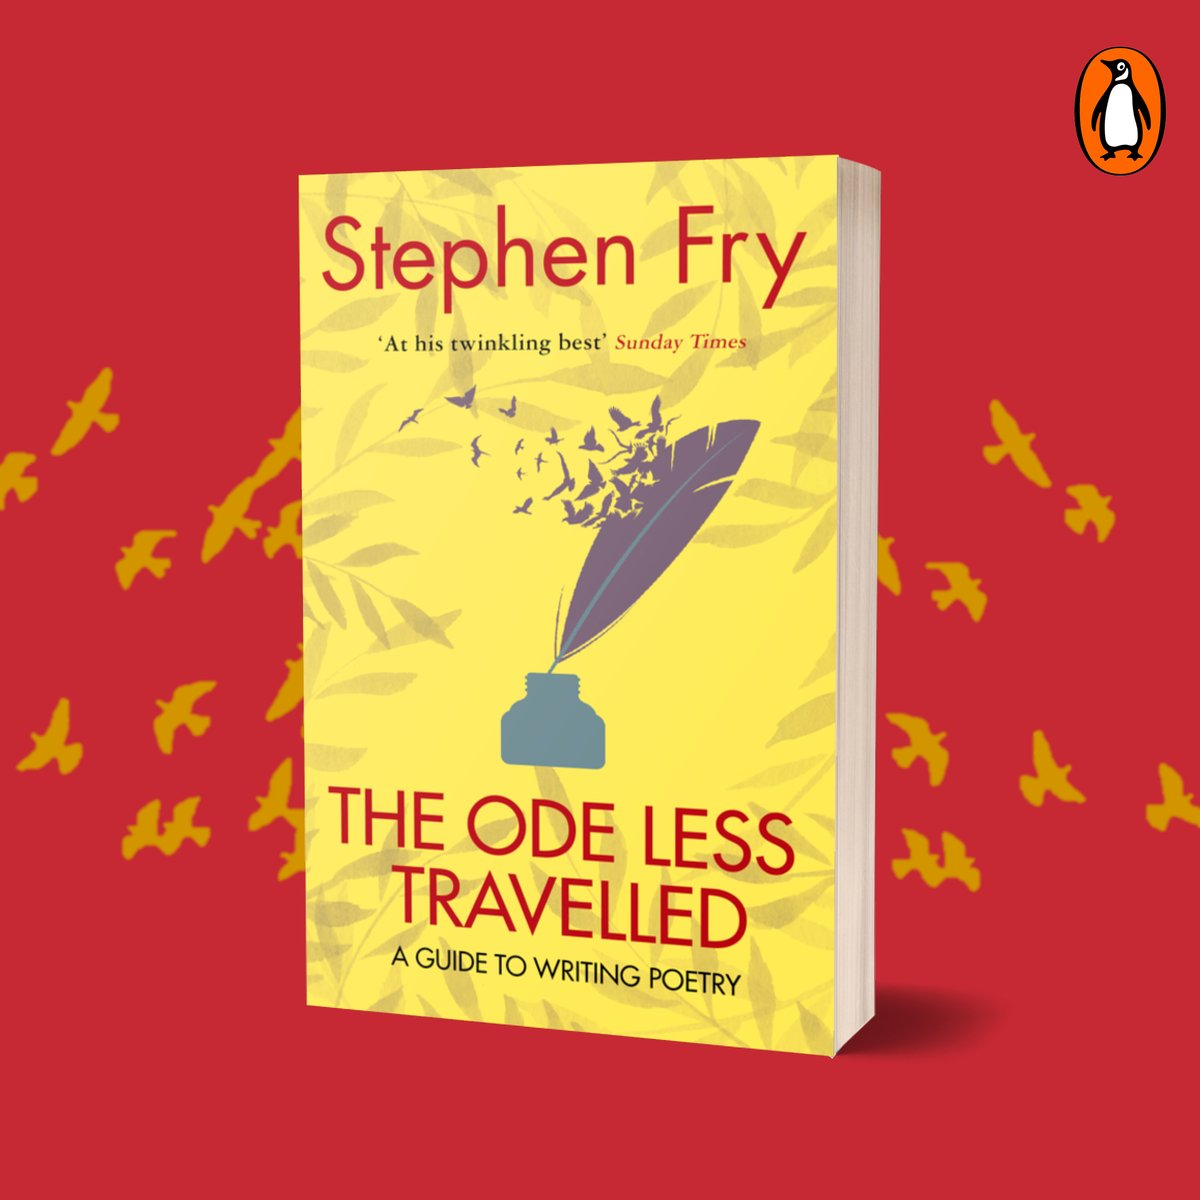 THE ODE LESS TRAVELLED, @stephenfry's guide to writing poetry, is also now available with a stunning new cover.  Full of exercises, witty insights and step-by-step advice, it guides the reader towards mastery and confidence in the Mother of the Arts.